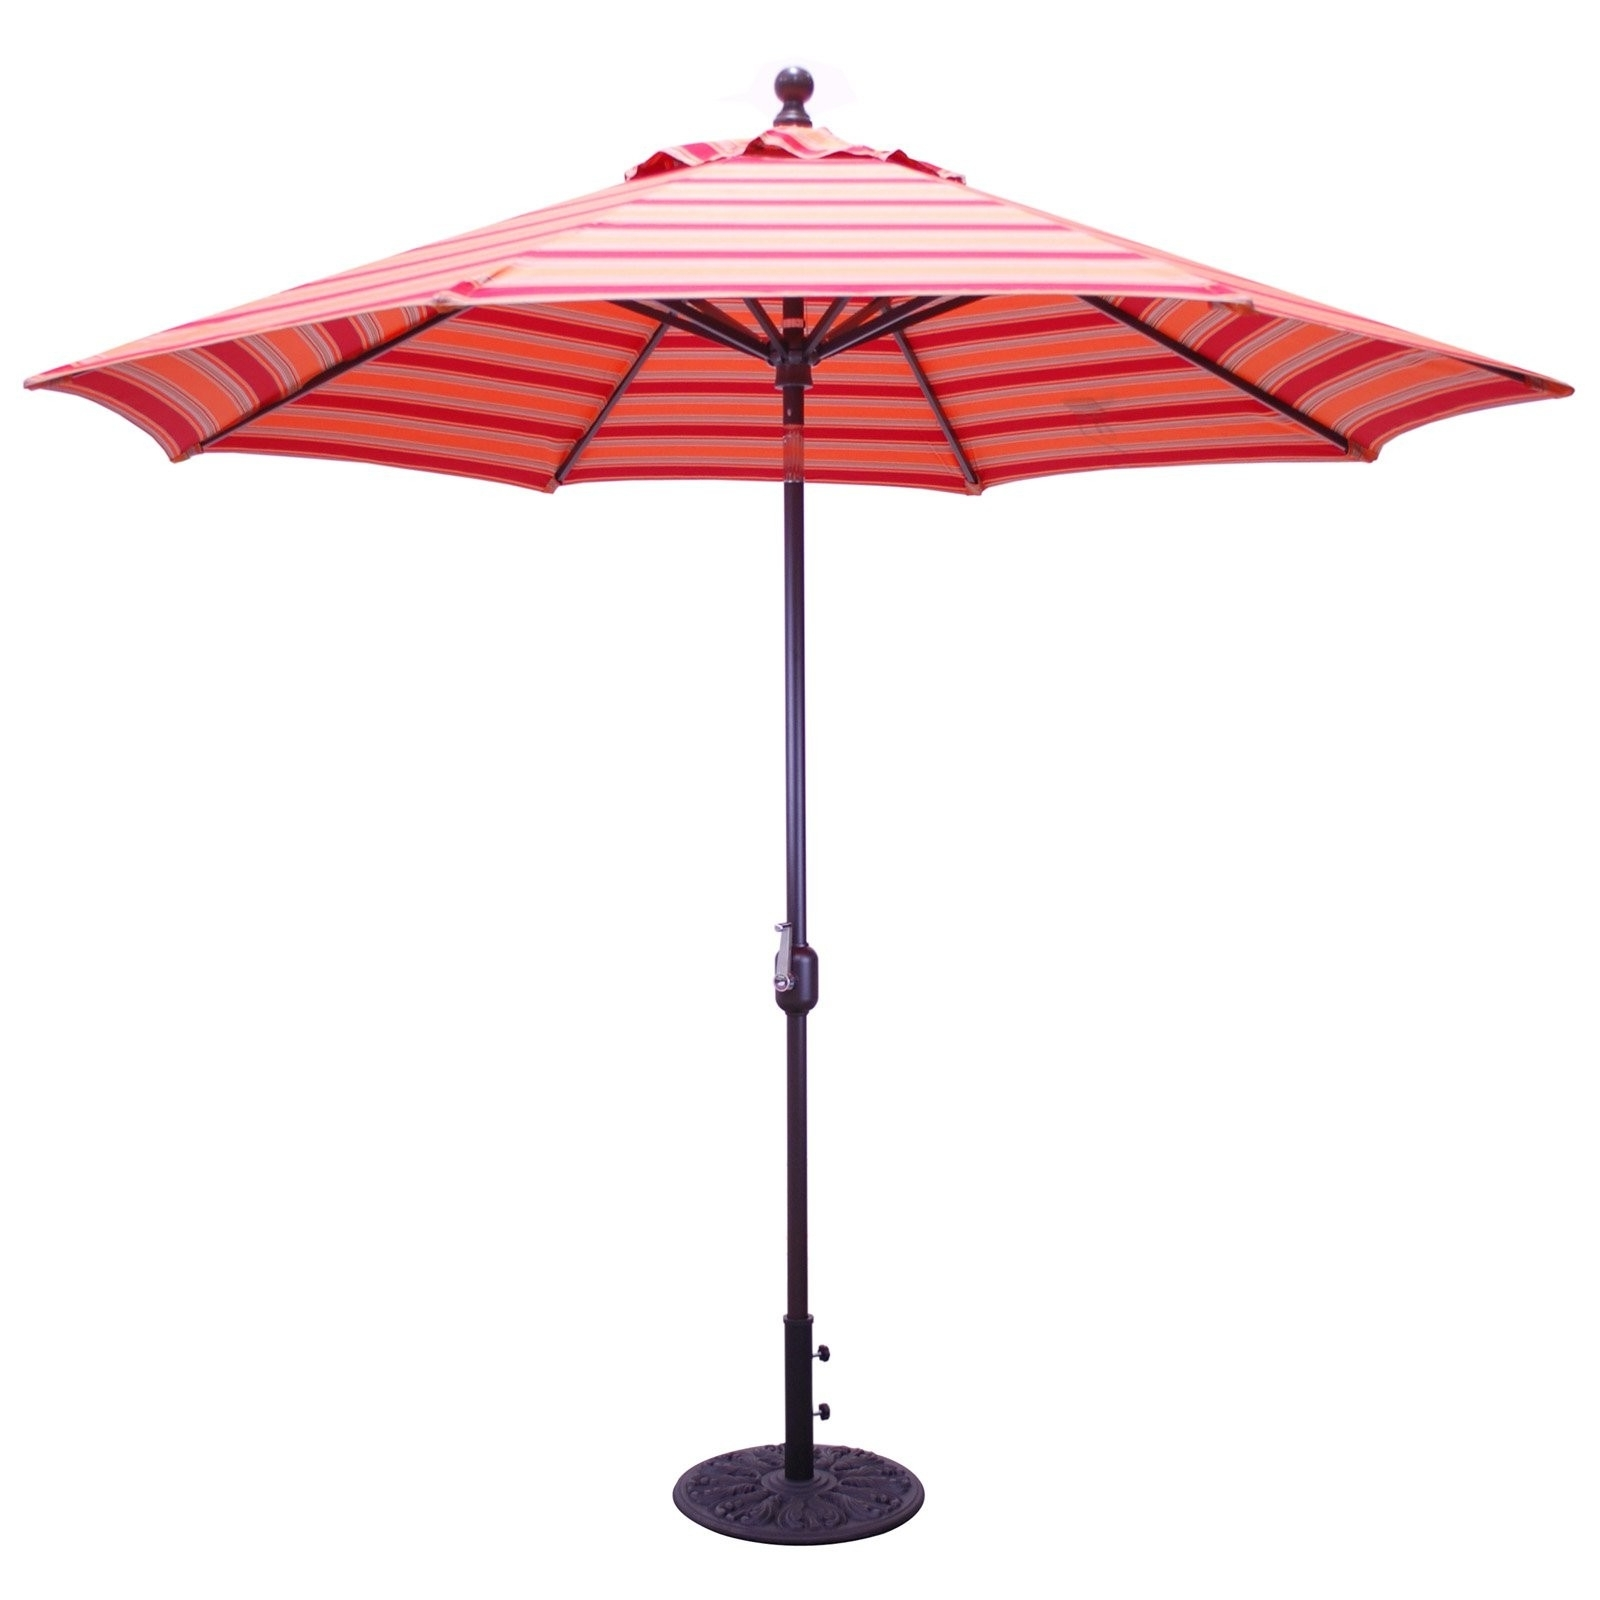 Best And Newest Galtech 9 Ft Sunbrella Aluminum Deluxe Auto Tilt Patio Umbrella With Regard To Sunbrella Patio Table Umbrellas (View 2 of 20)